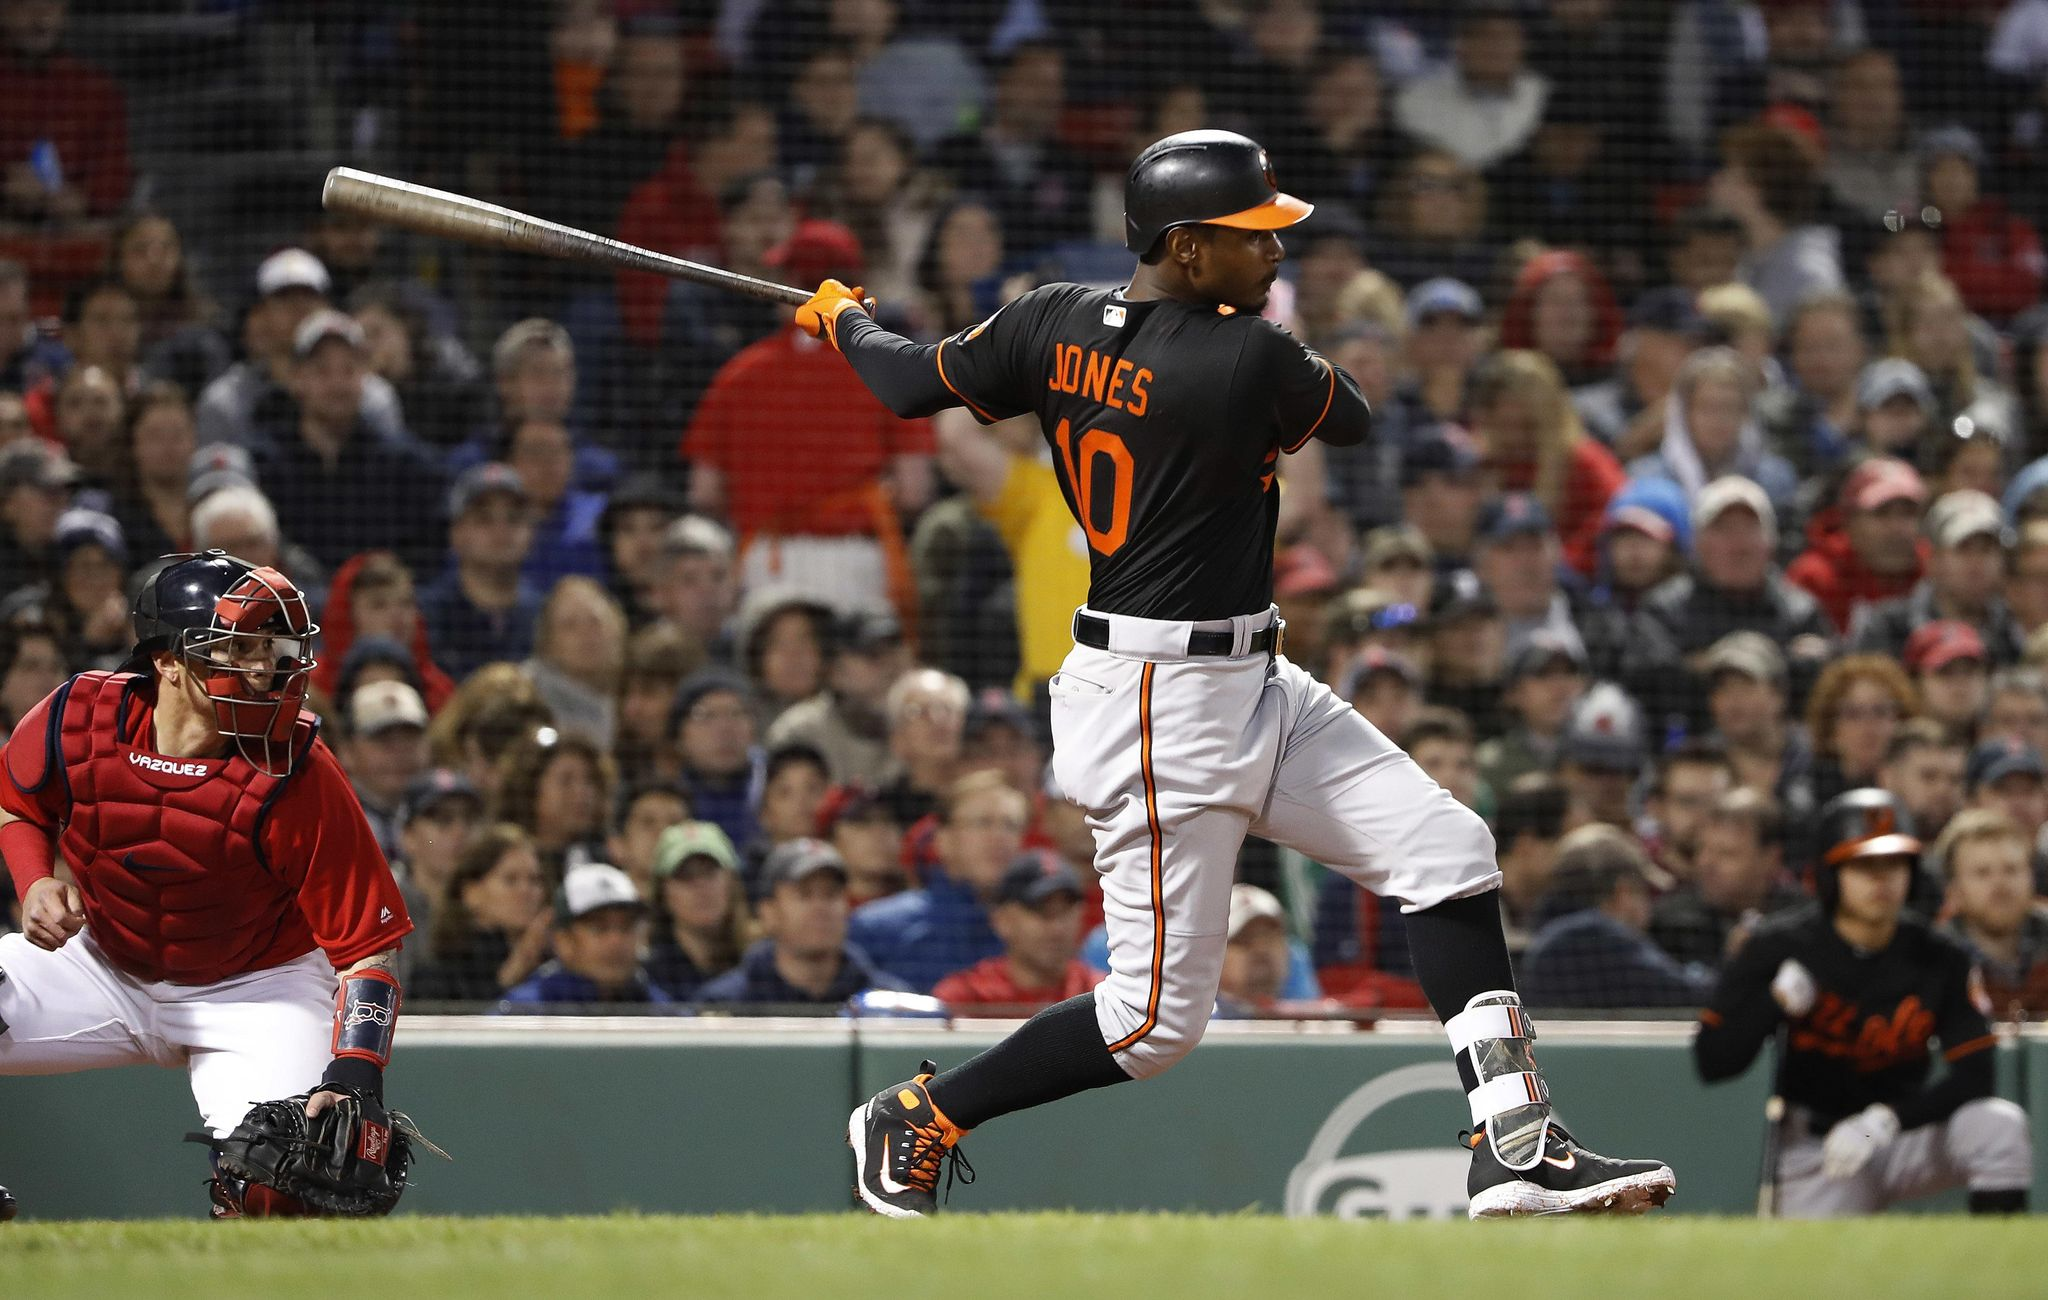 Orioles_red_sox_baseball_78939_s2048x1300